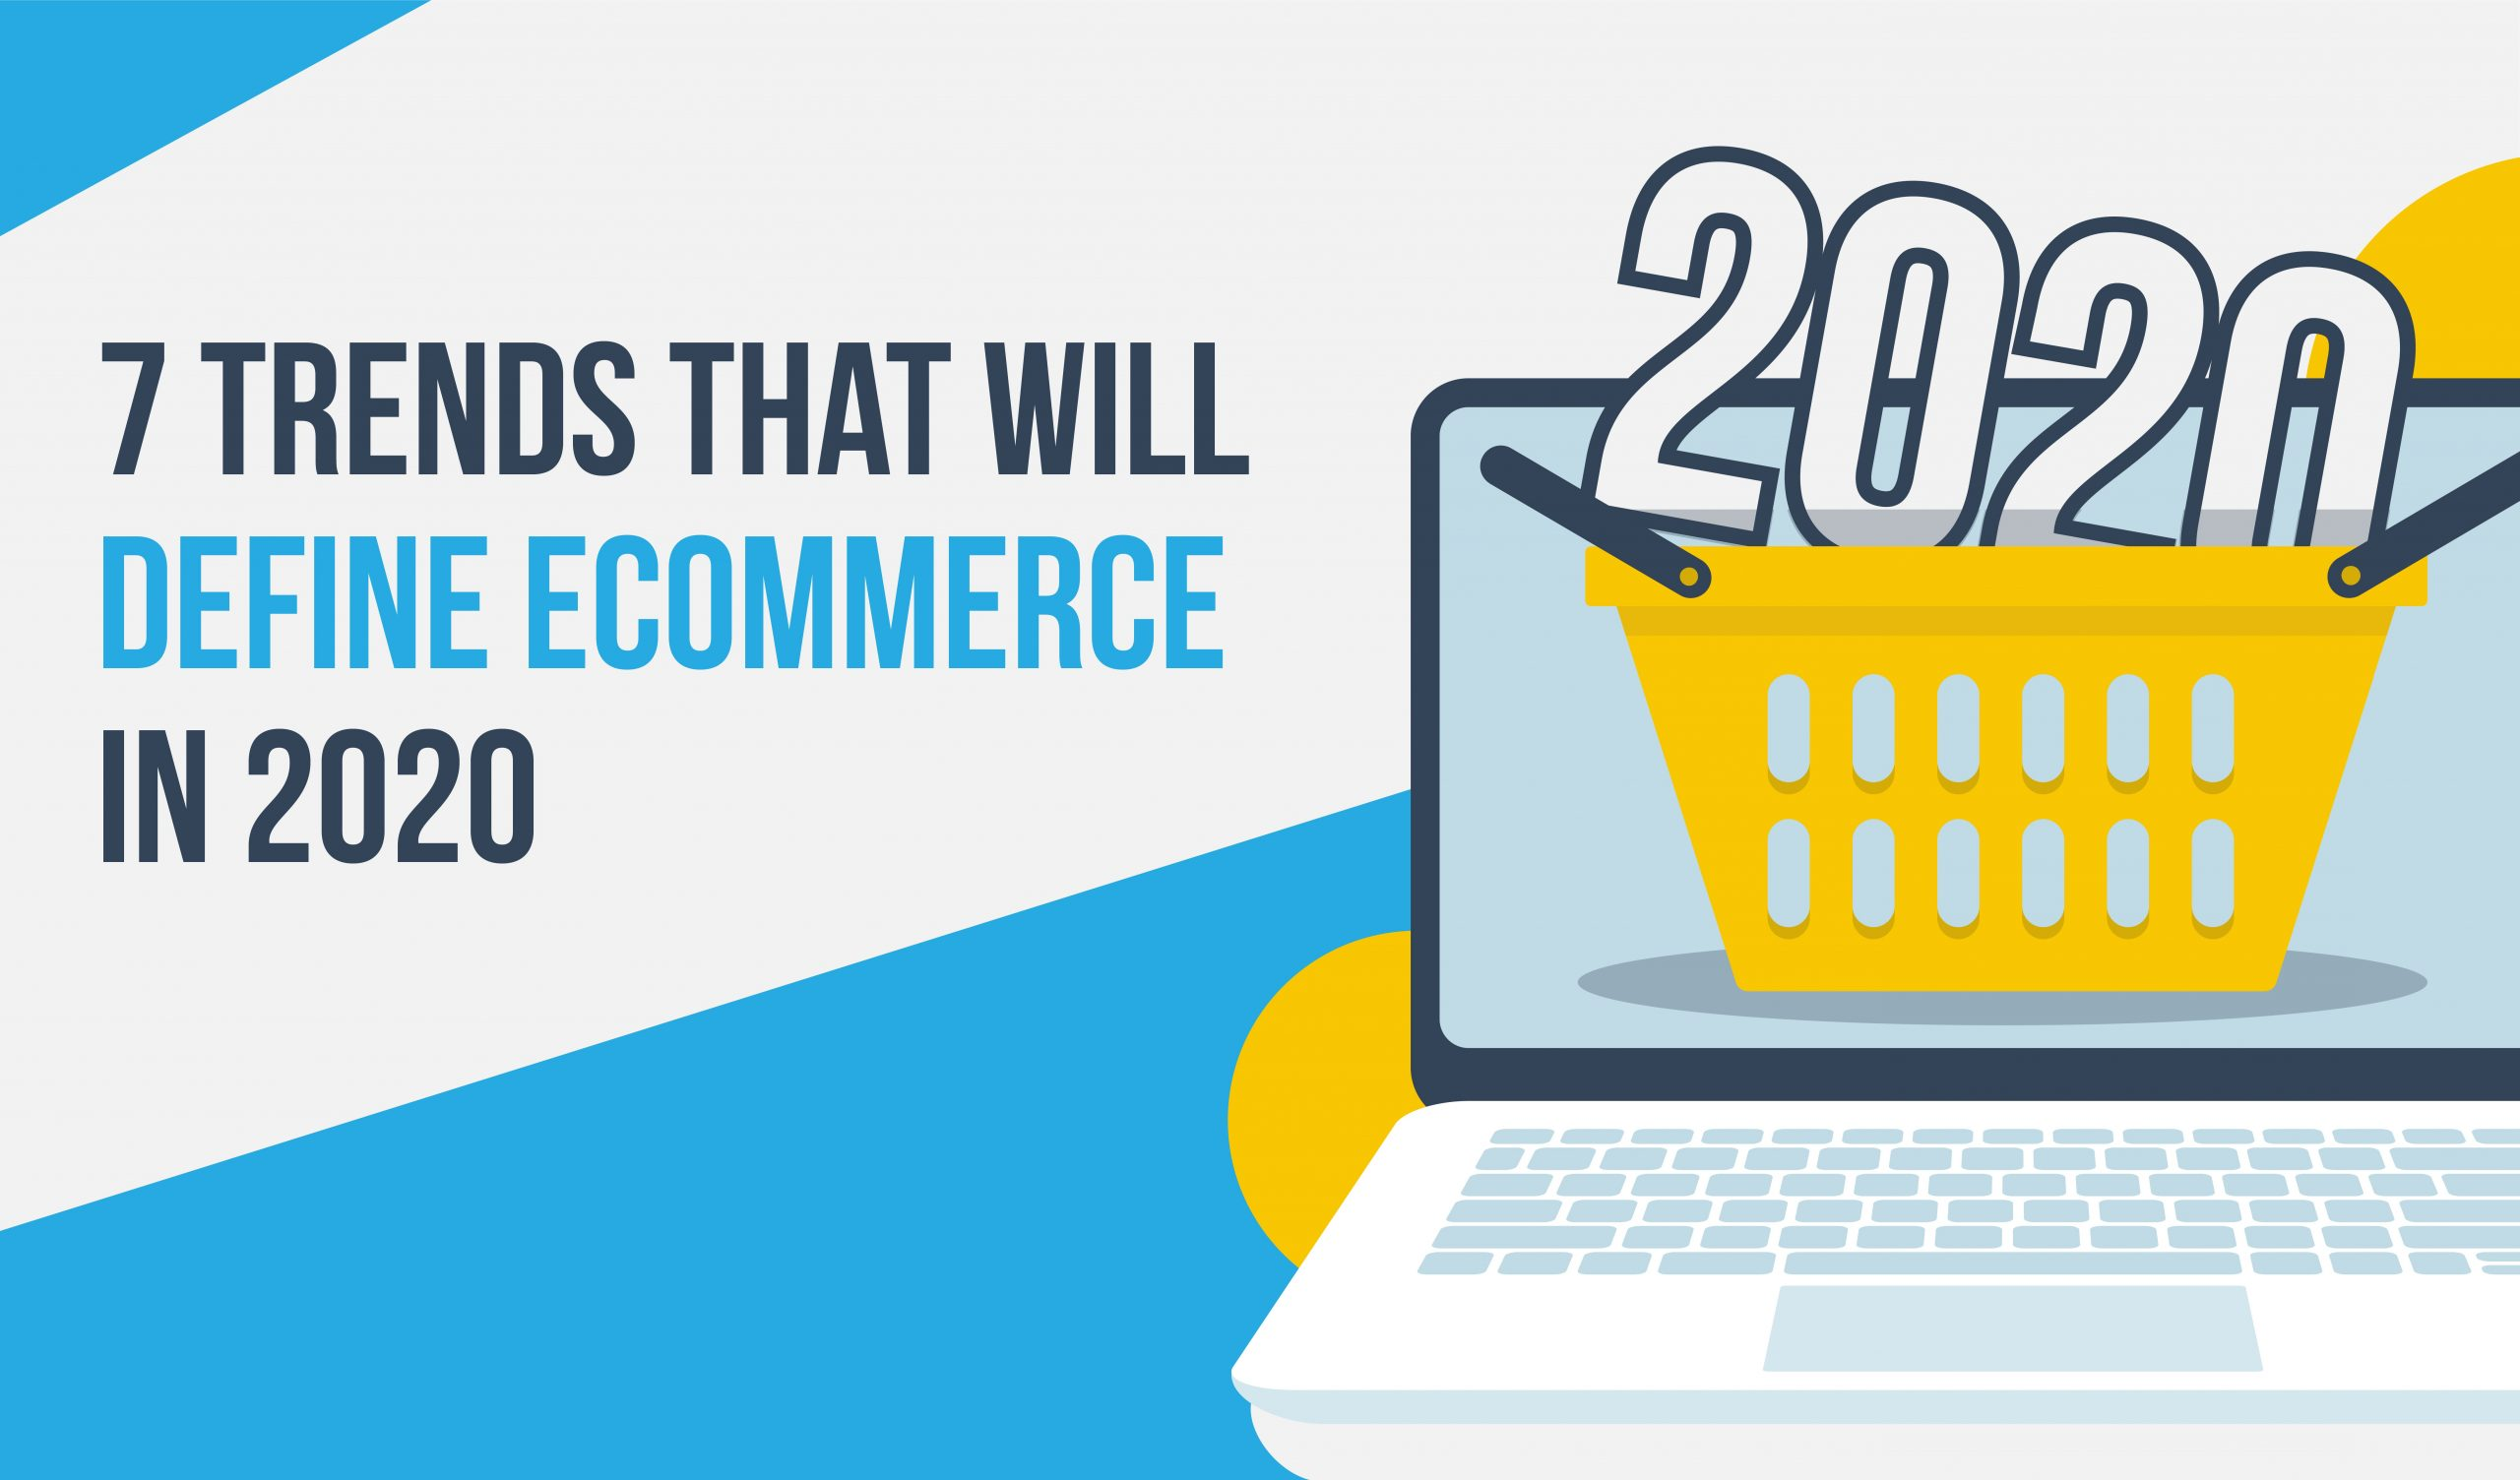 7 Trends that will define eCommerce in 2020